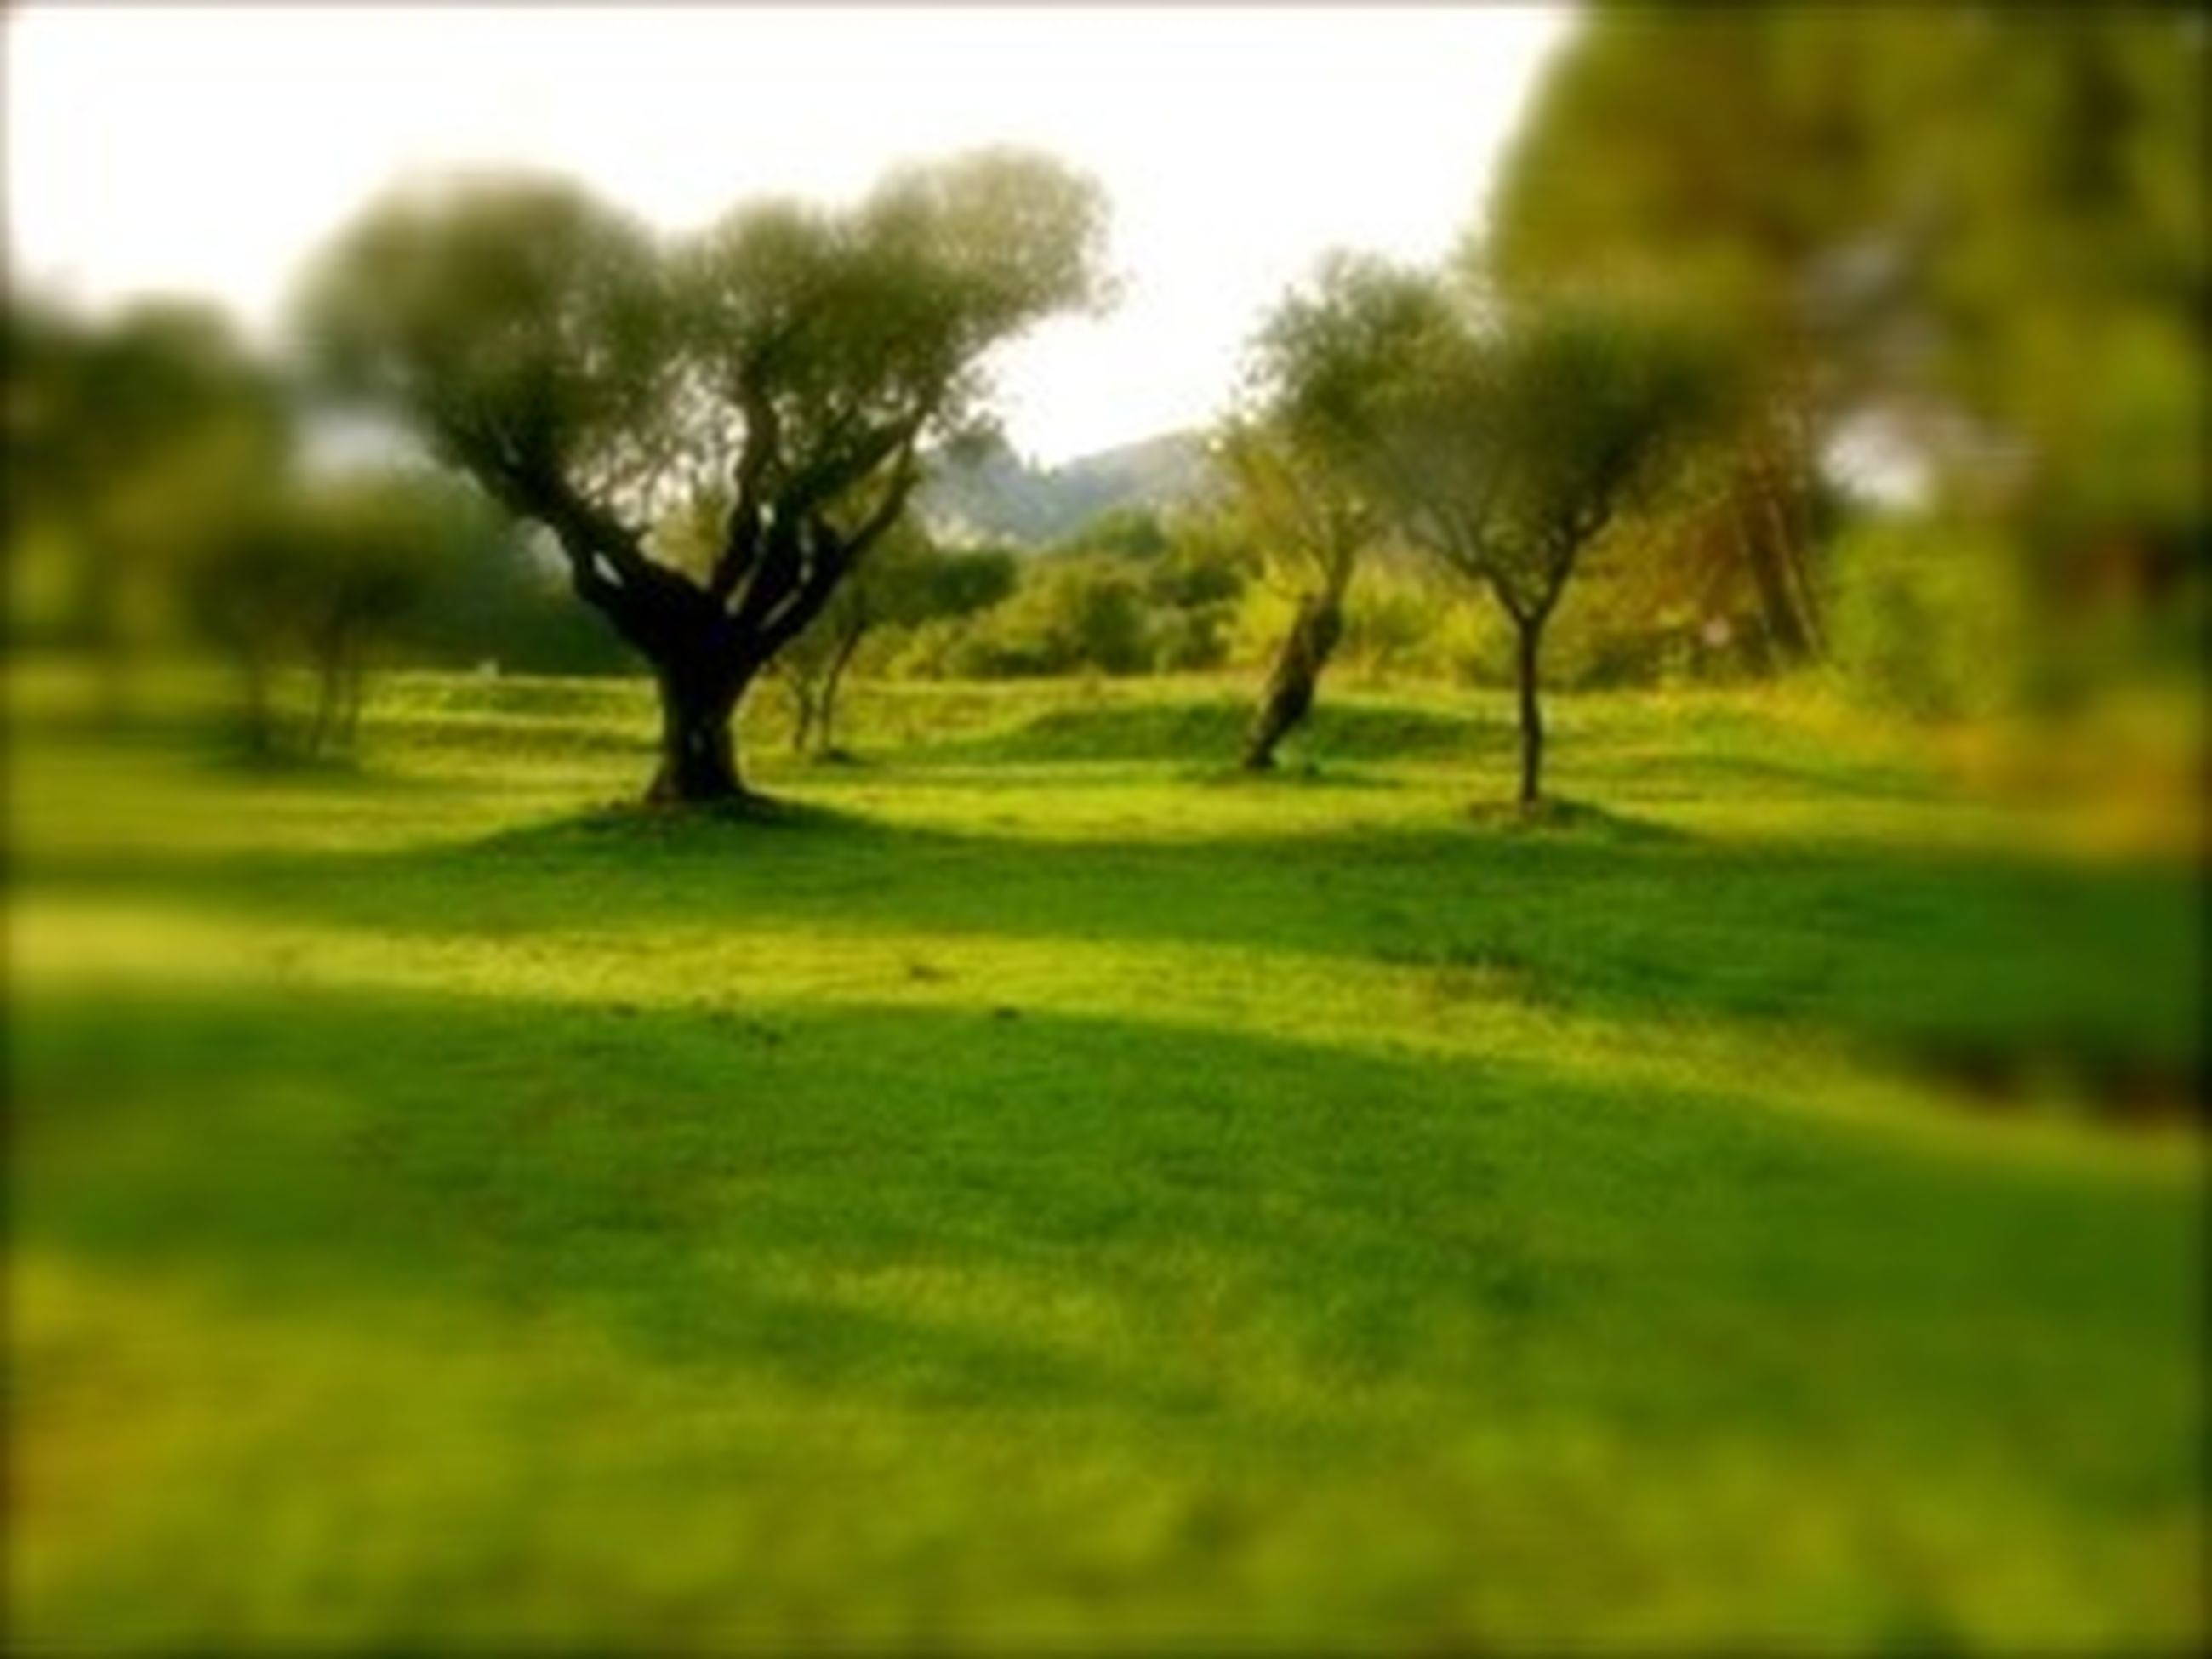 tree, grass, tranquility, field, green color, growth, tranquil scene, landscape, nature, grassy, beauty in nature, selective focus, scenics, day, no people, outdoors, non-urban scene, auto post production filter, sunlight, focus on foreground